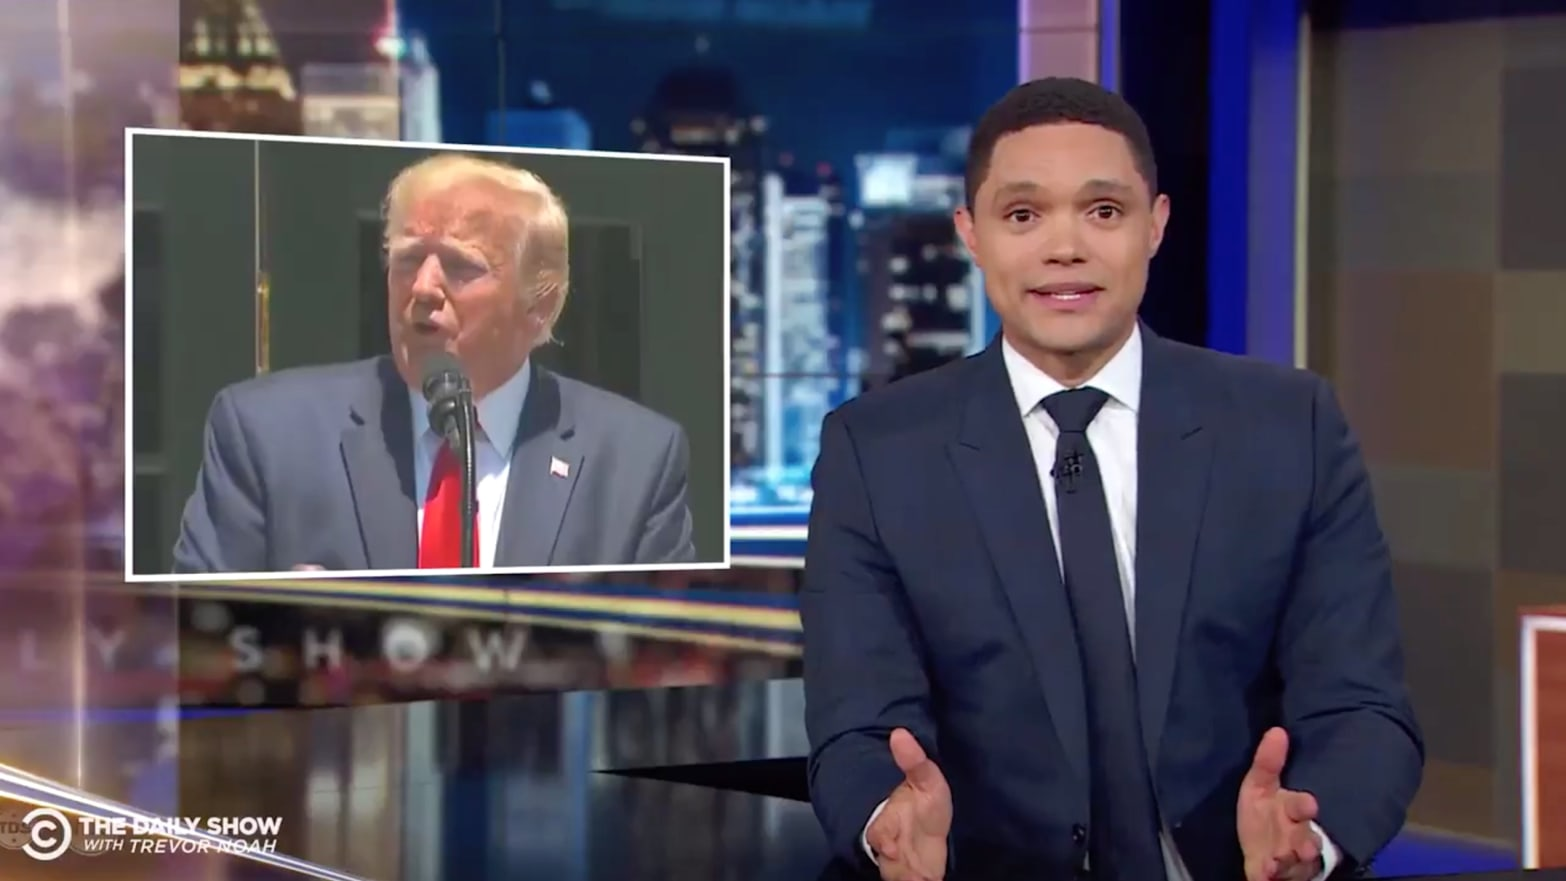 'Daily Show's' Trevor Noah Compares Trump to Hitler After Racist Tweets Against Congresswomen